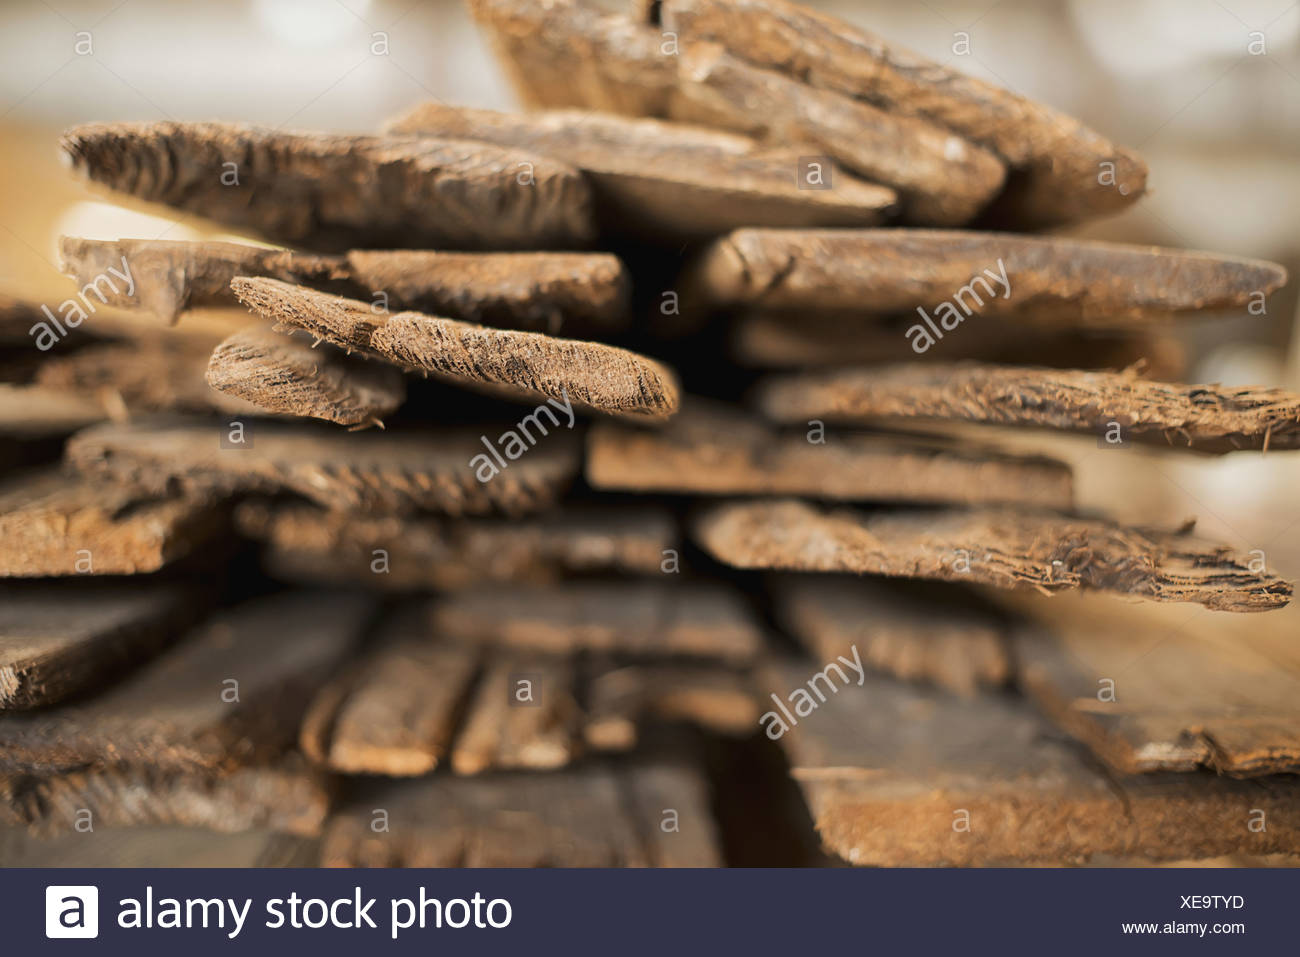 A heap of recycled reclaimed timber planks of wood Environmentally responsible reclamation in a timber yard - Stock Image